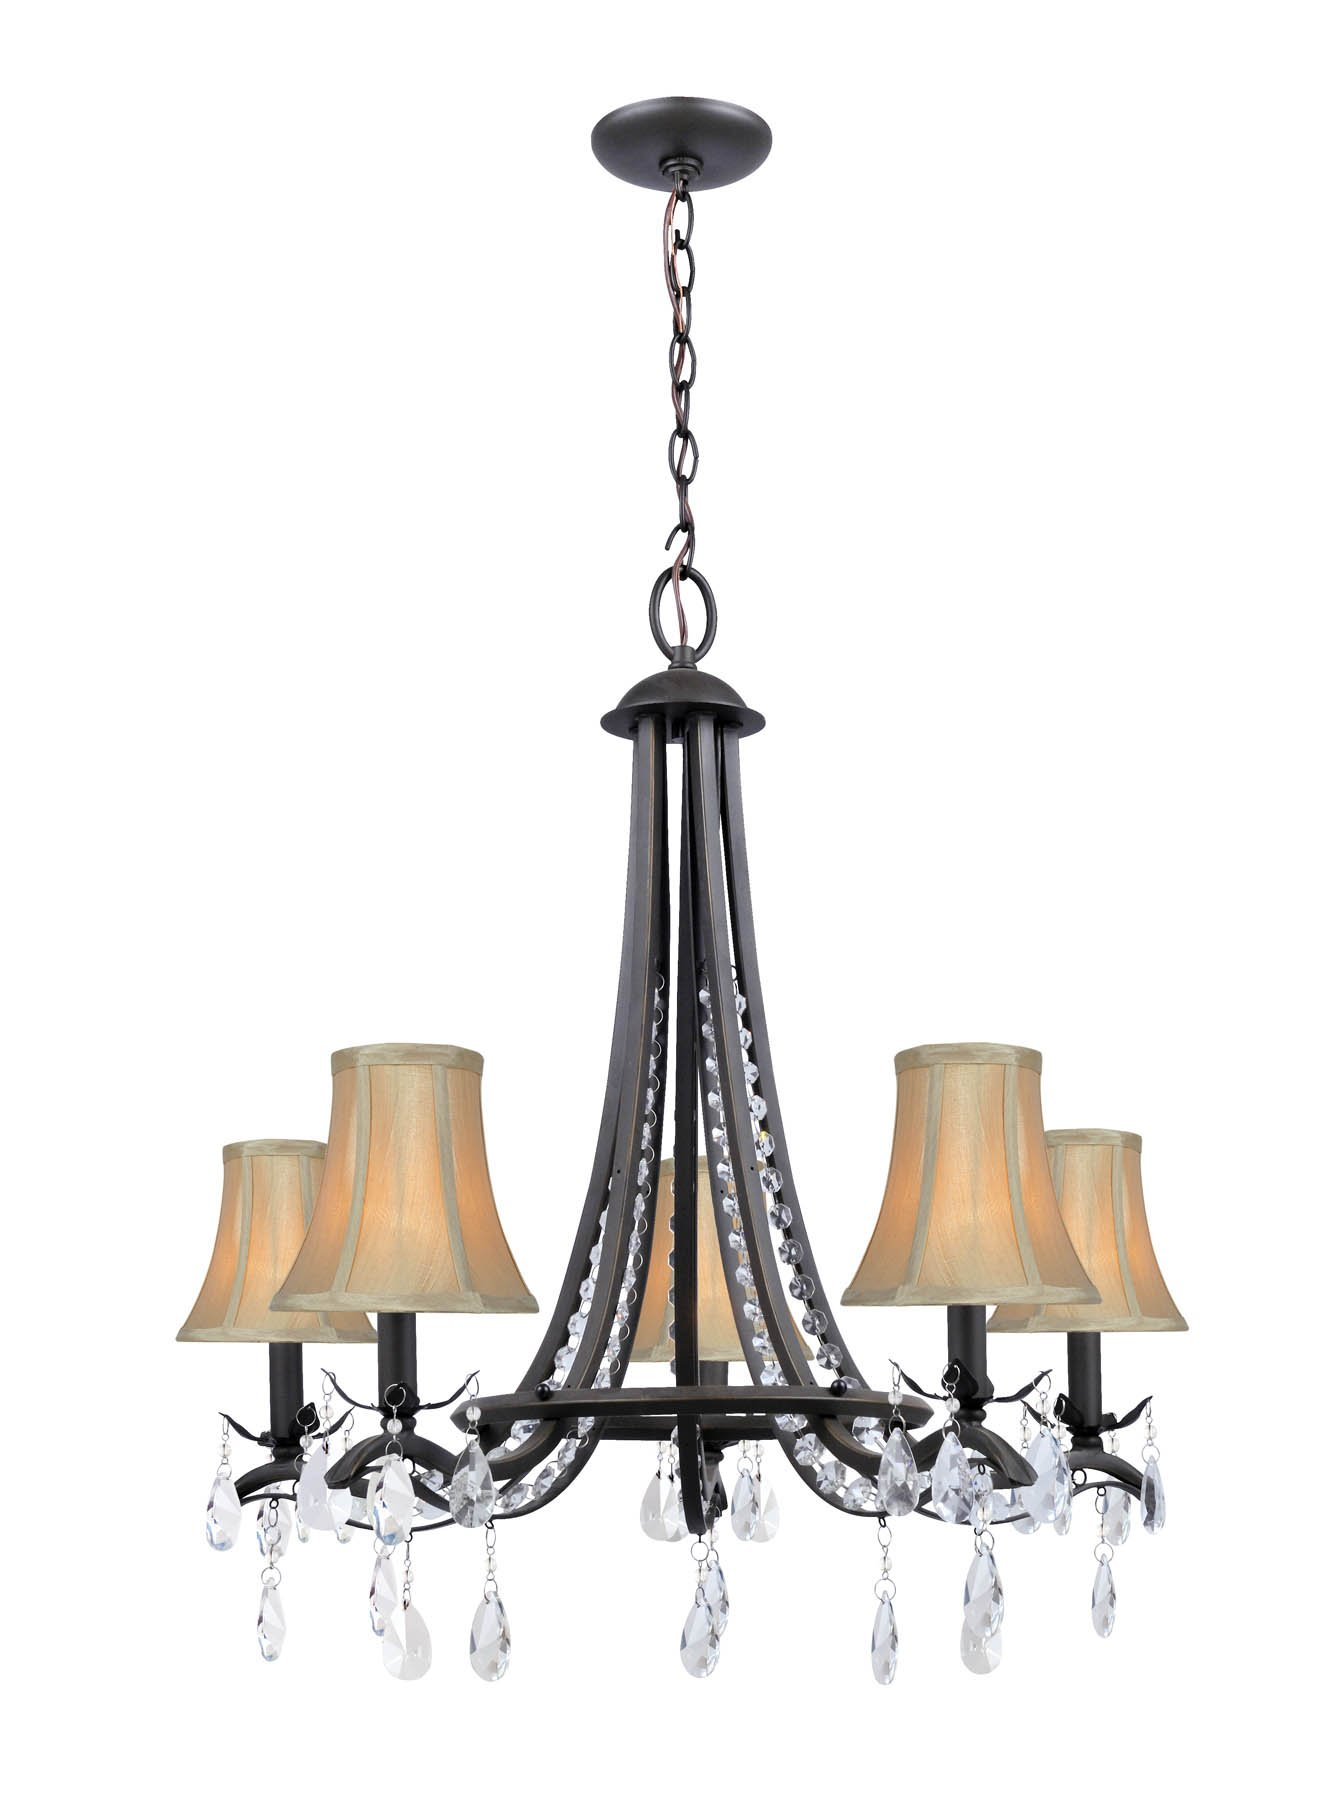 Lite Source C71285 Macy 5-Light Chandelier, Dark Bronze by Lite Source